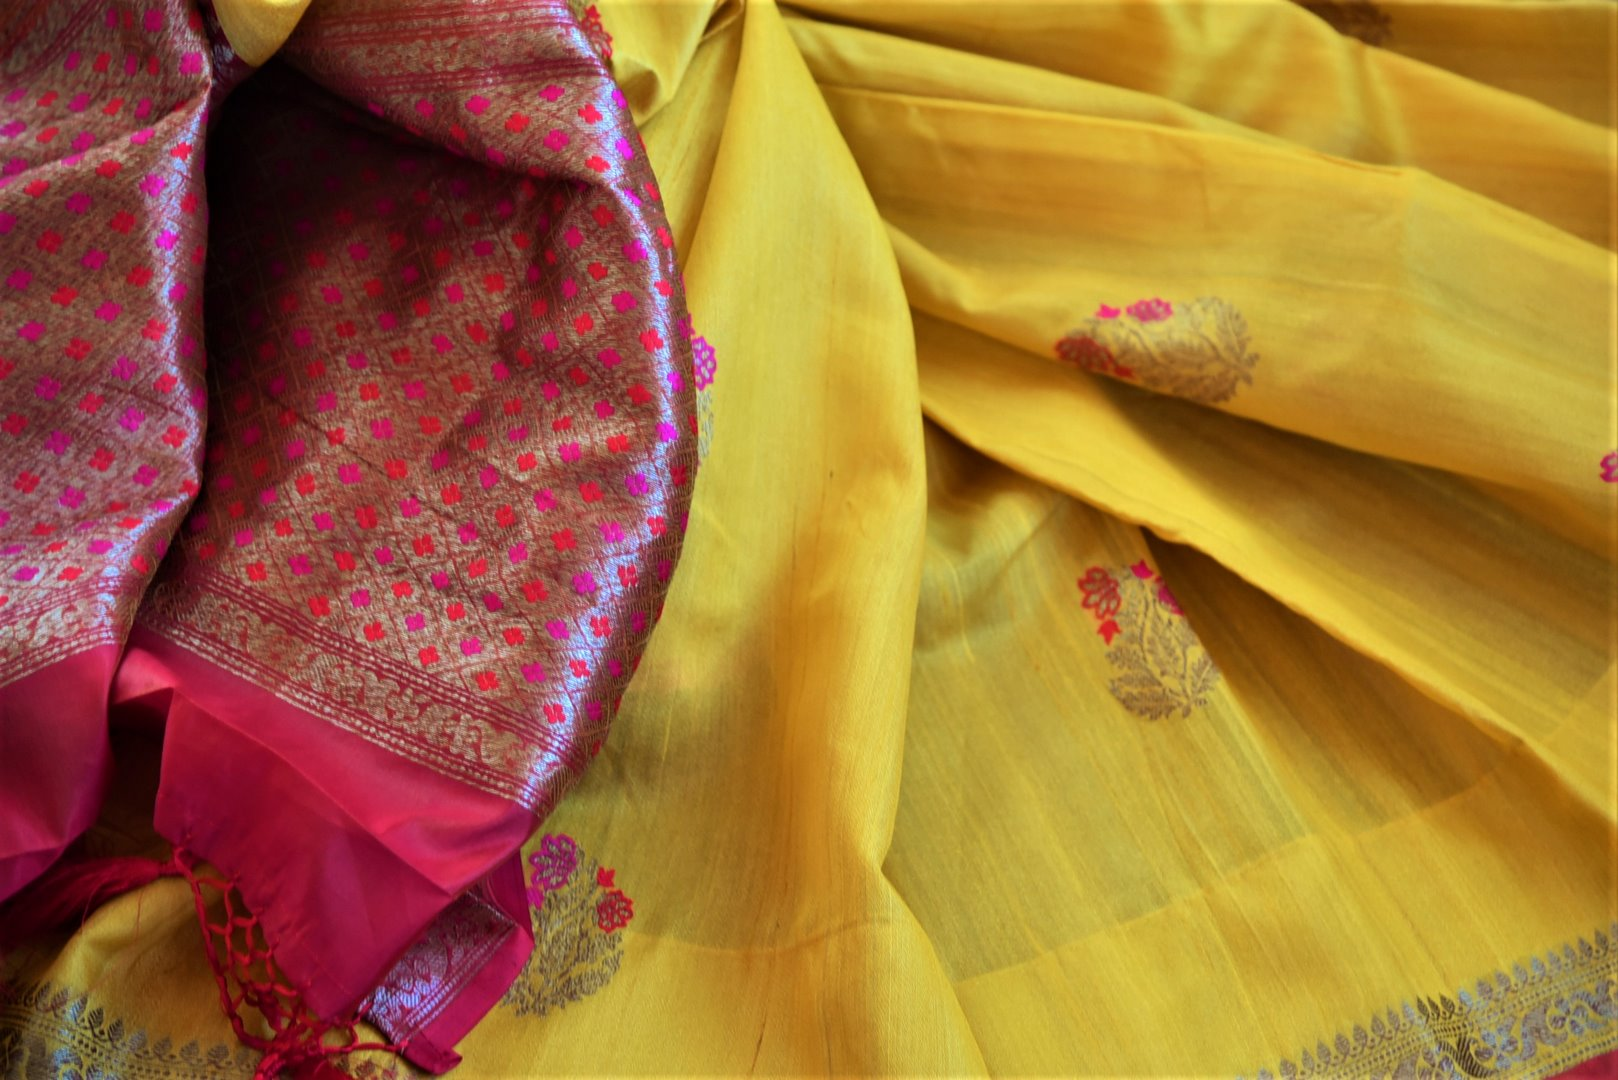 Shop beautiful yellow tassar Benarasi saree online in USA with antique zari floral border. Wear designer sarees, Banarasi sarees, handwoven tussar sarees on special occasions from Pure Elegance Indian clothing store in USA. -details